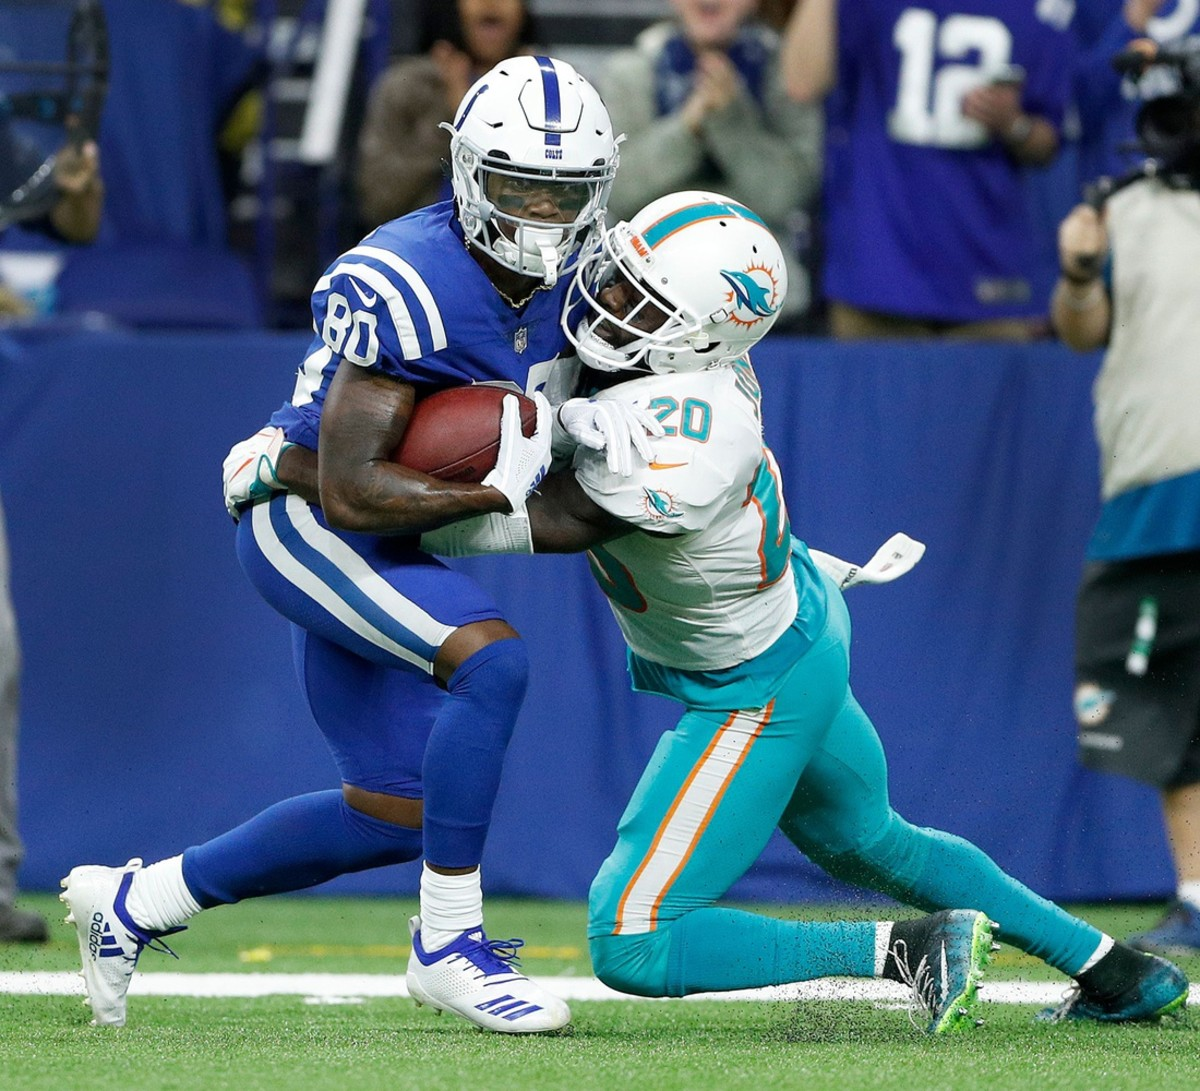 Indianapolis Colts wide receiver Chester Rogers (80) fights for a first down as he is hit by Miami Dolphins free safety Reshad Jones (20) in the fourth quarter of their game at Lucas Oil Stadium on Sunday, Nov. 25, 2018.© Matt Kryger/IndyStar